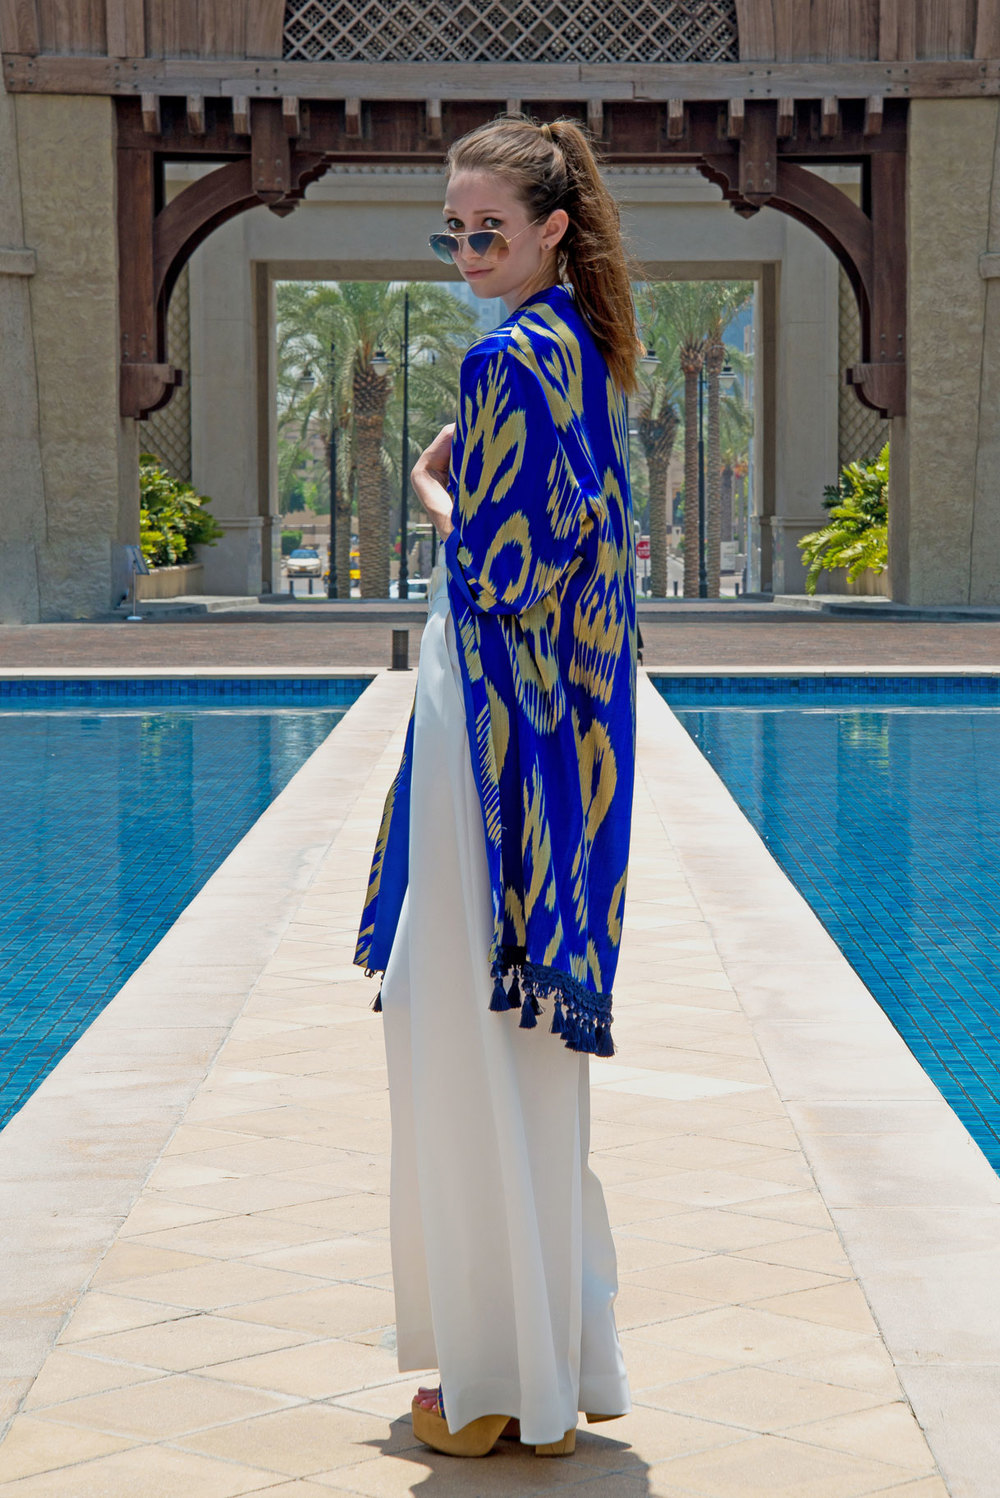 Chapan: SHADI by Dilbar & Sitora / Pants: Carolina Herrera / Photo by: Nathan Dunn